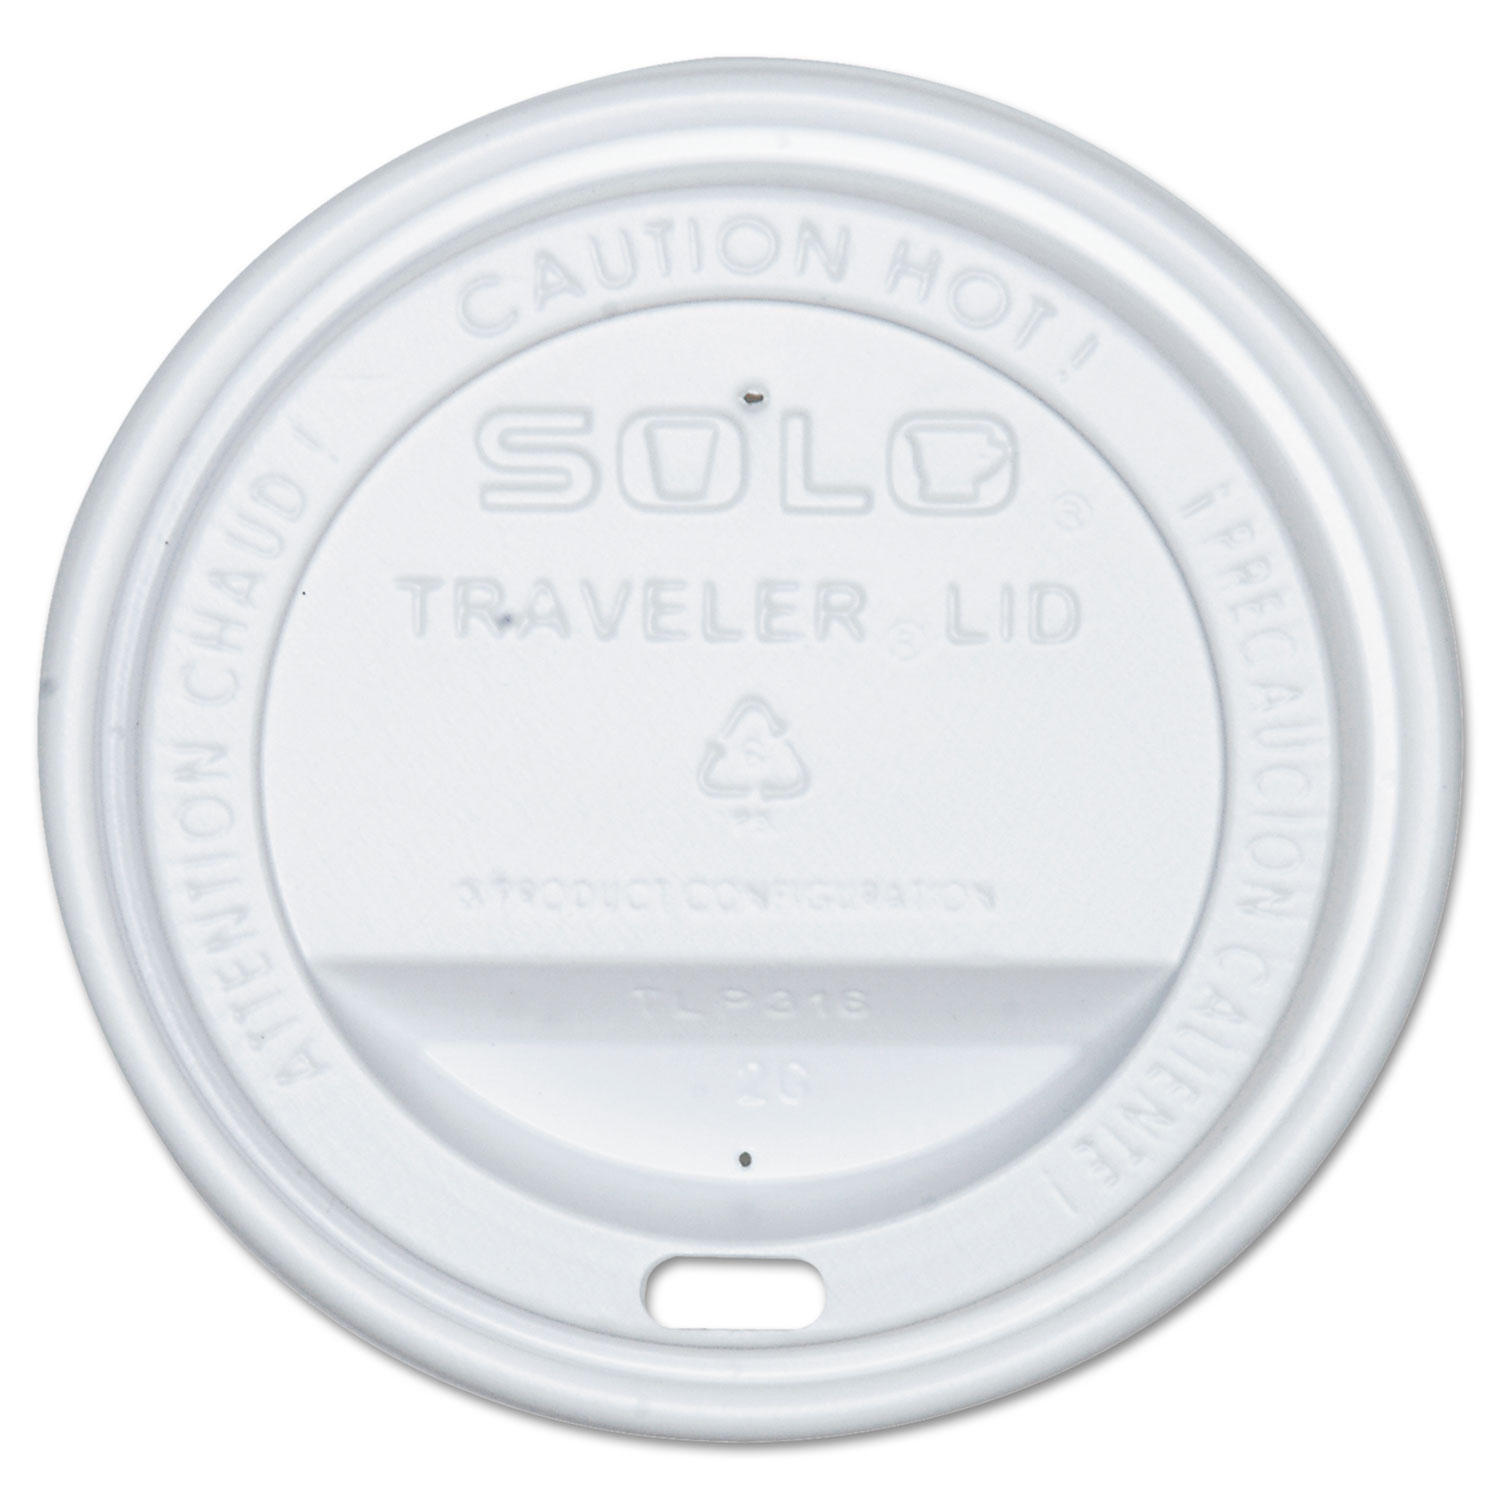 Solo White Traveler Lids for Cups - Package of 100 852-TLP316-0007